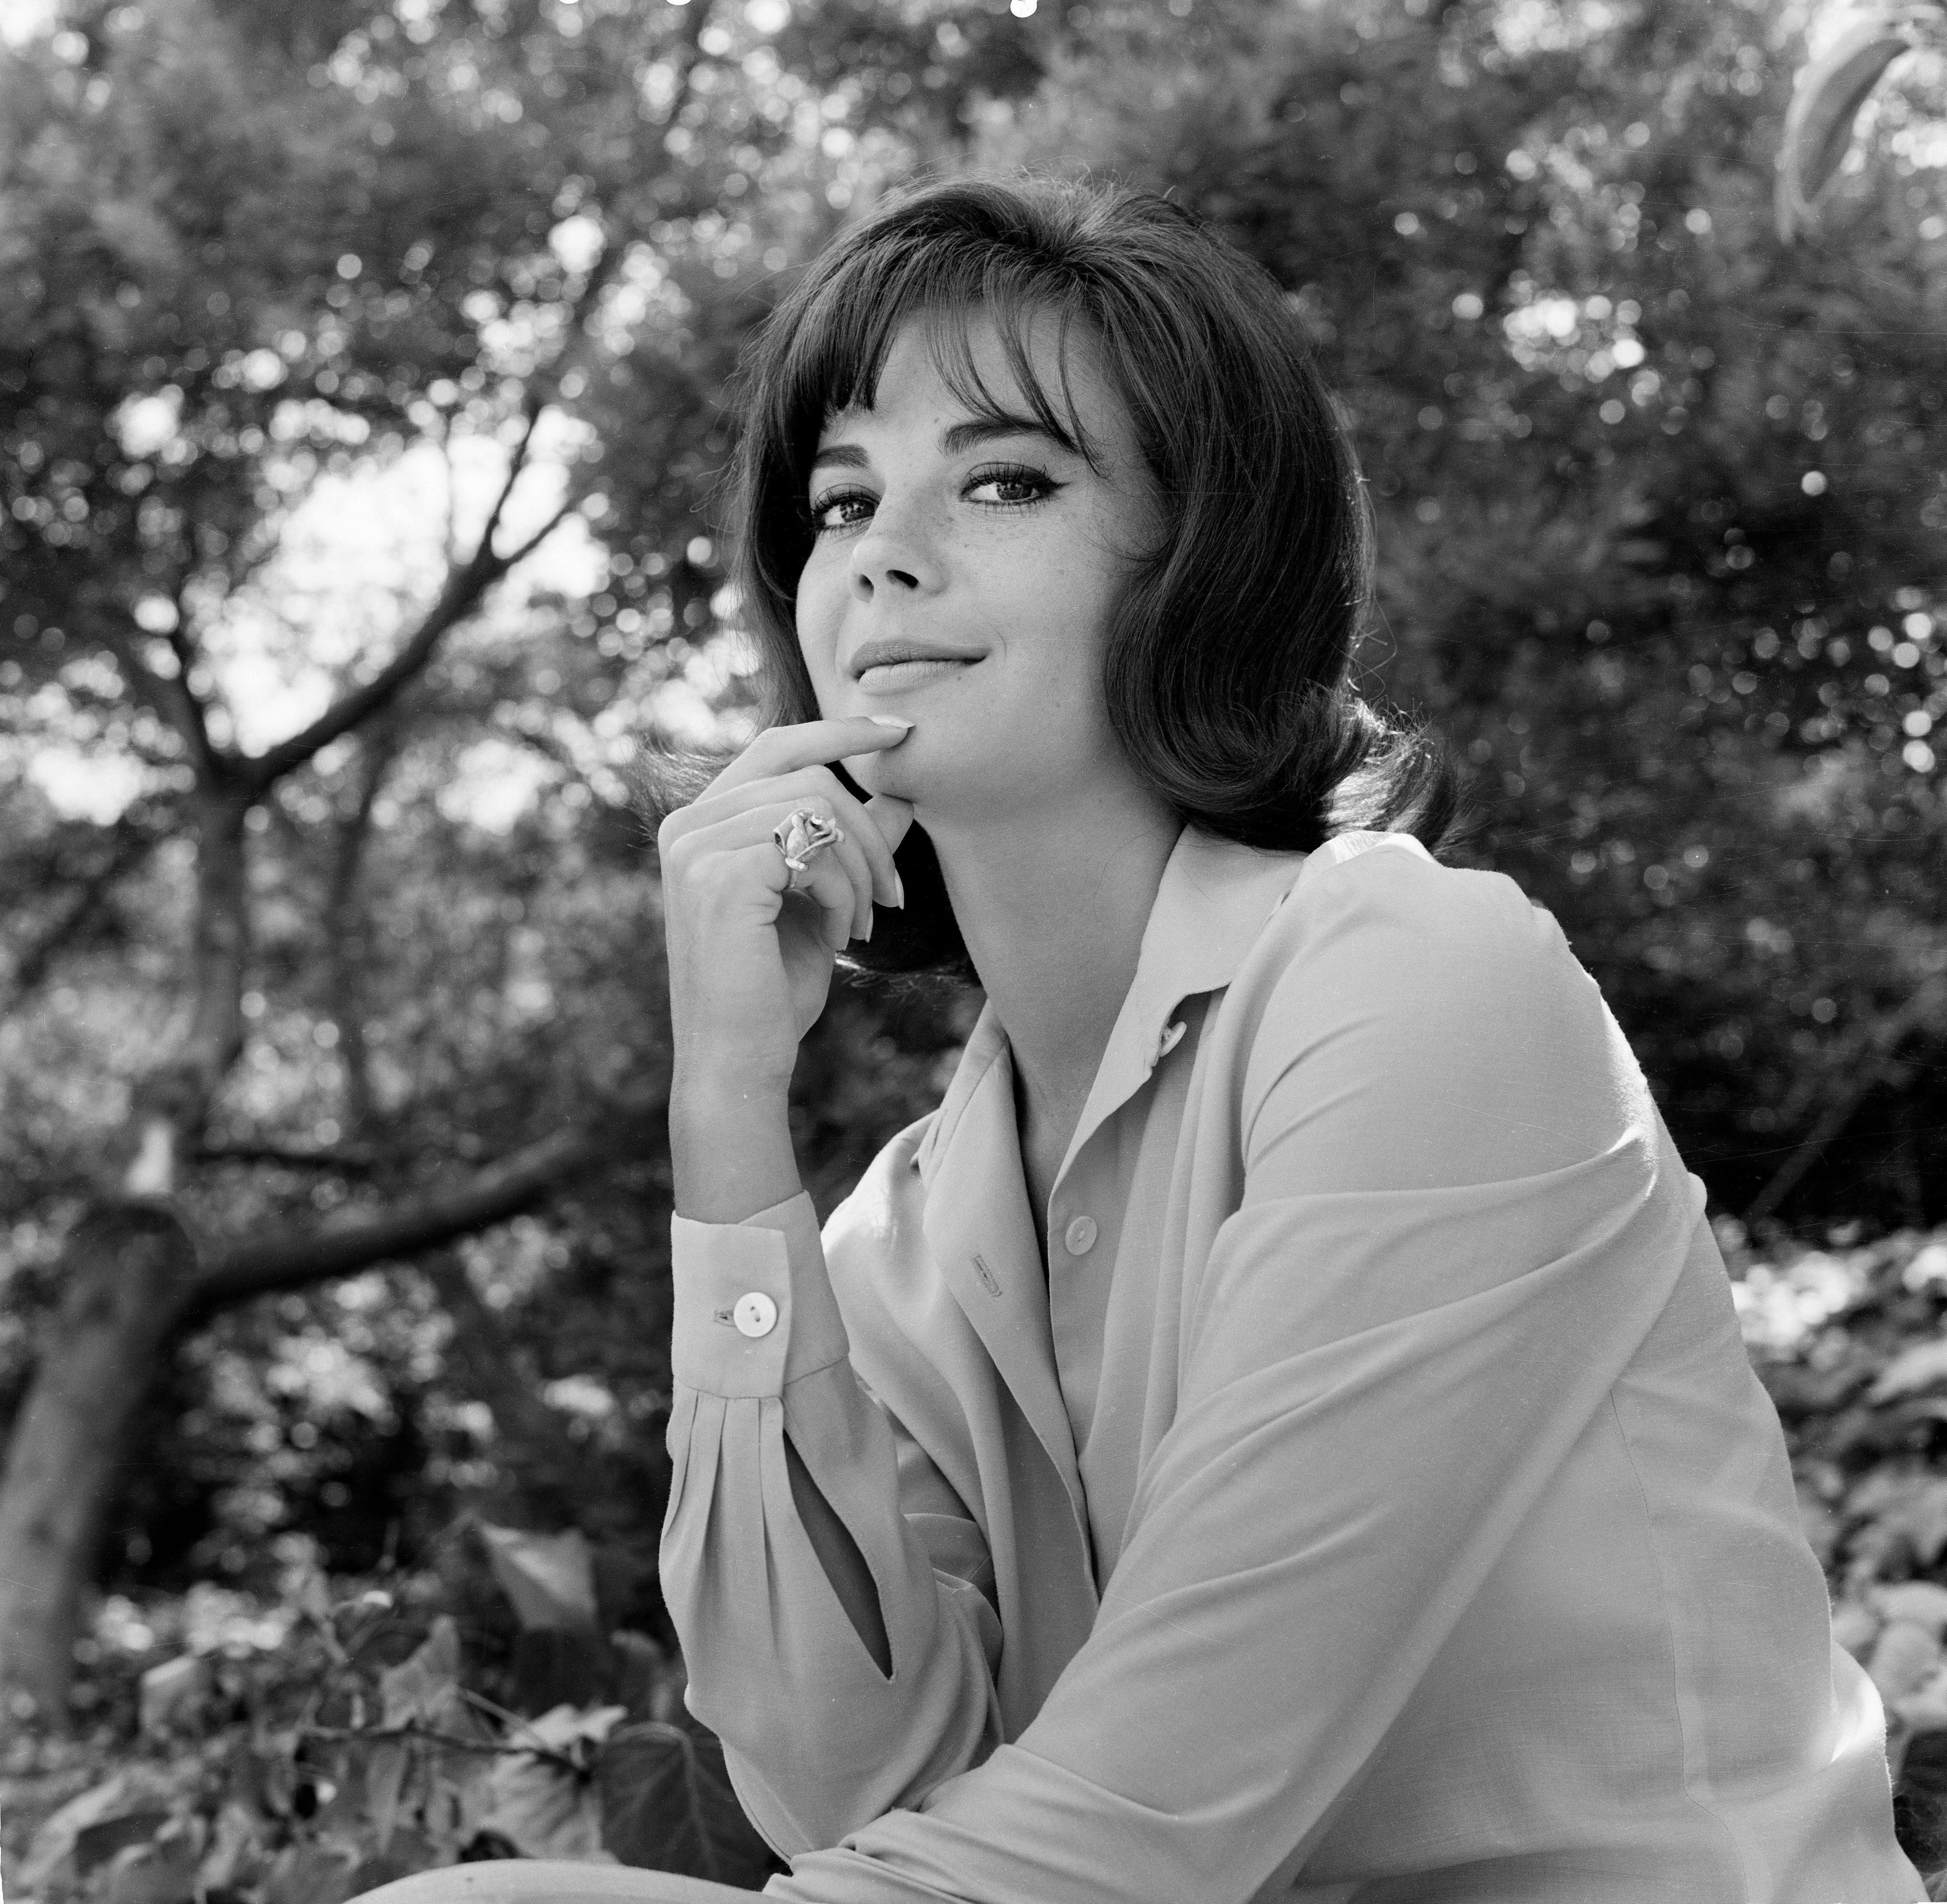 LOS ANGELES,CA - FEBRUARY 1956: Actress Natalie Wood poses for a portrait in Los Angeles,CA. (Photo by Earl Leaf/Michael Ochs Archives/Getty Images)